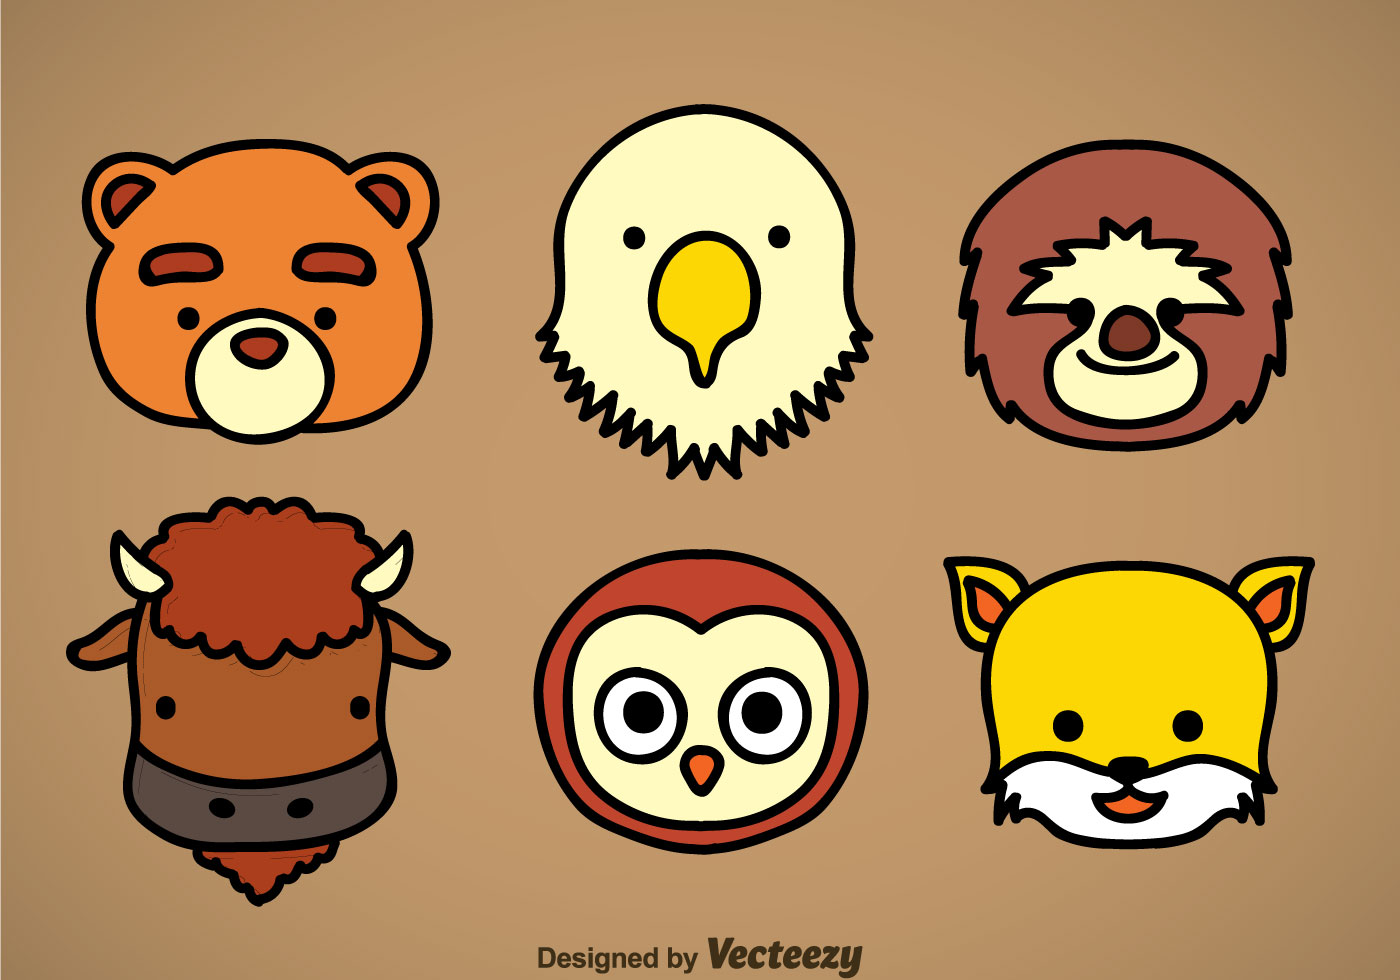 Cute Baby Animals Wallpaper Icon Cute Animal Head Icons Vector Sets Download Free Vector